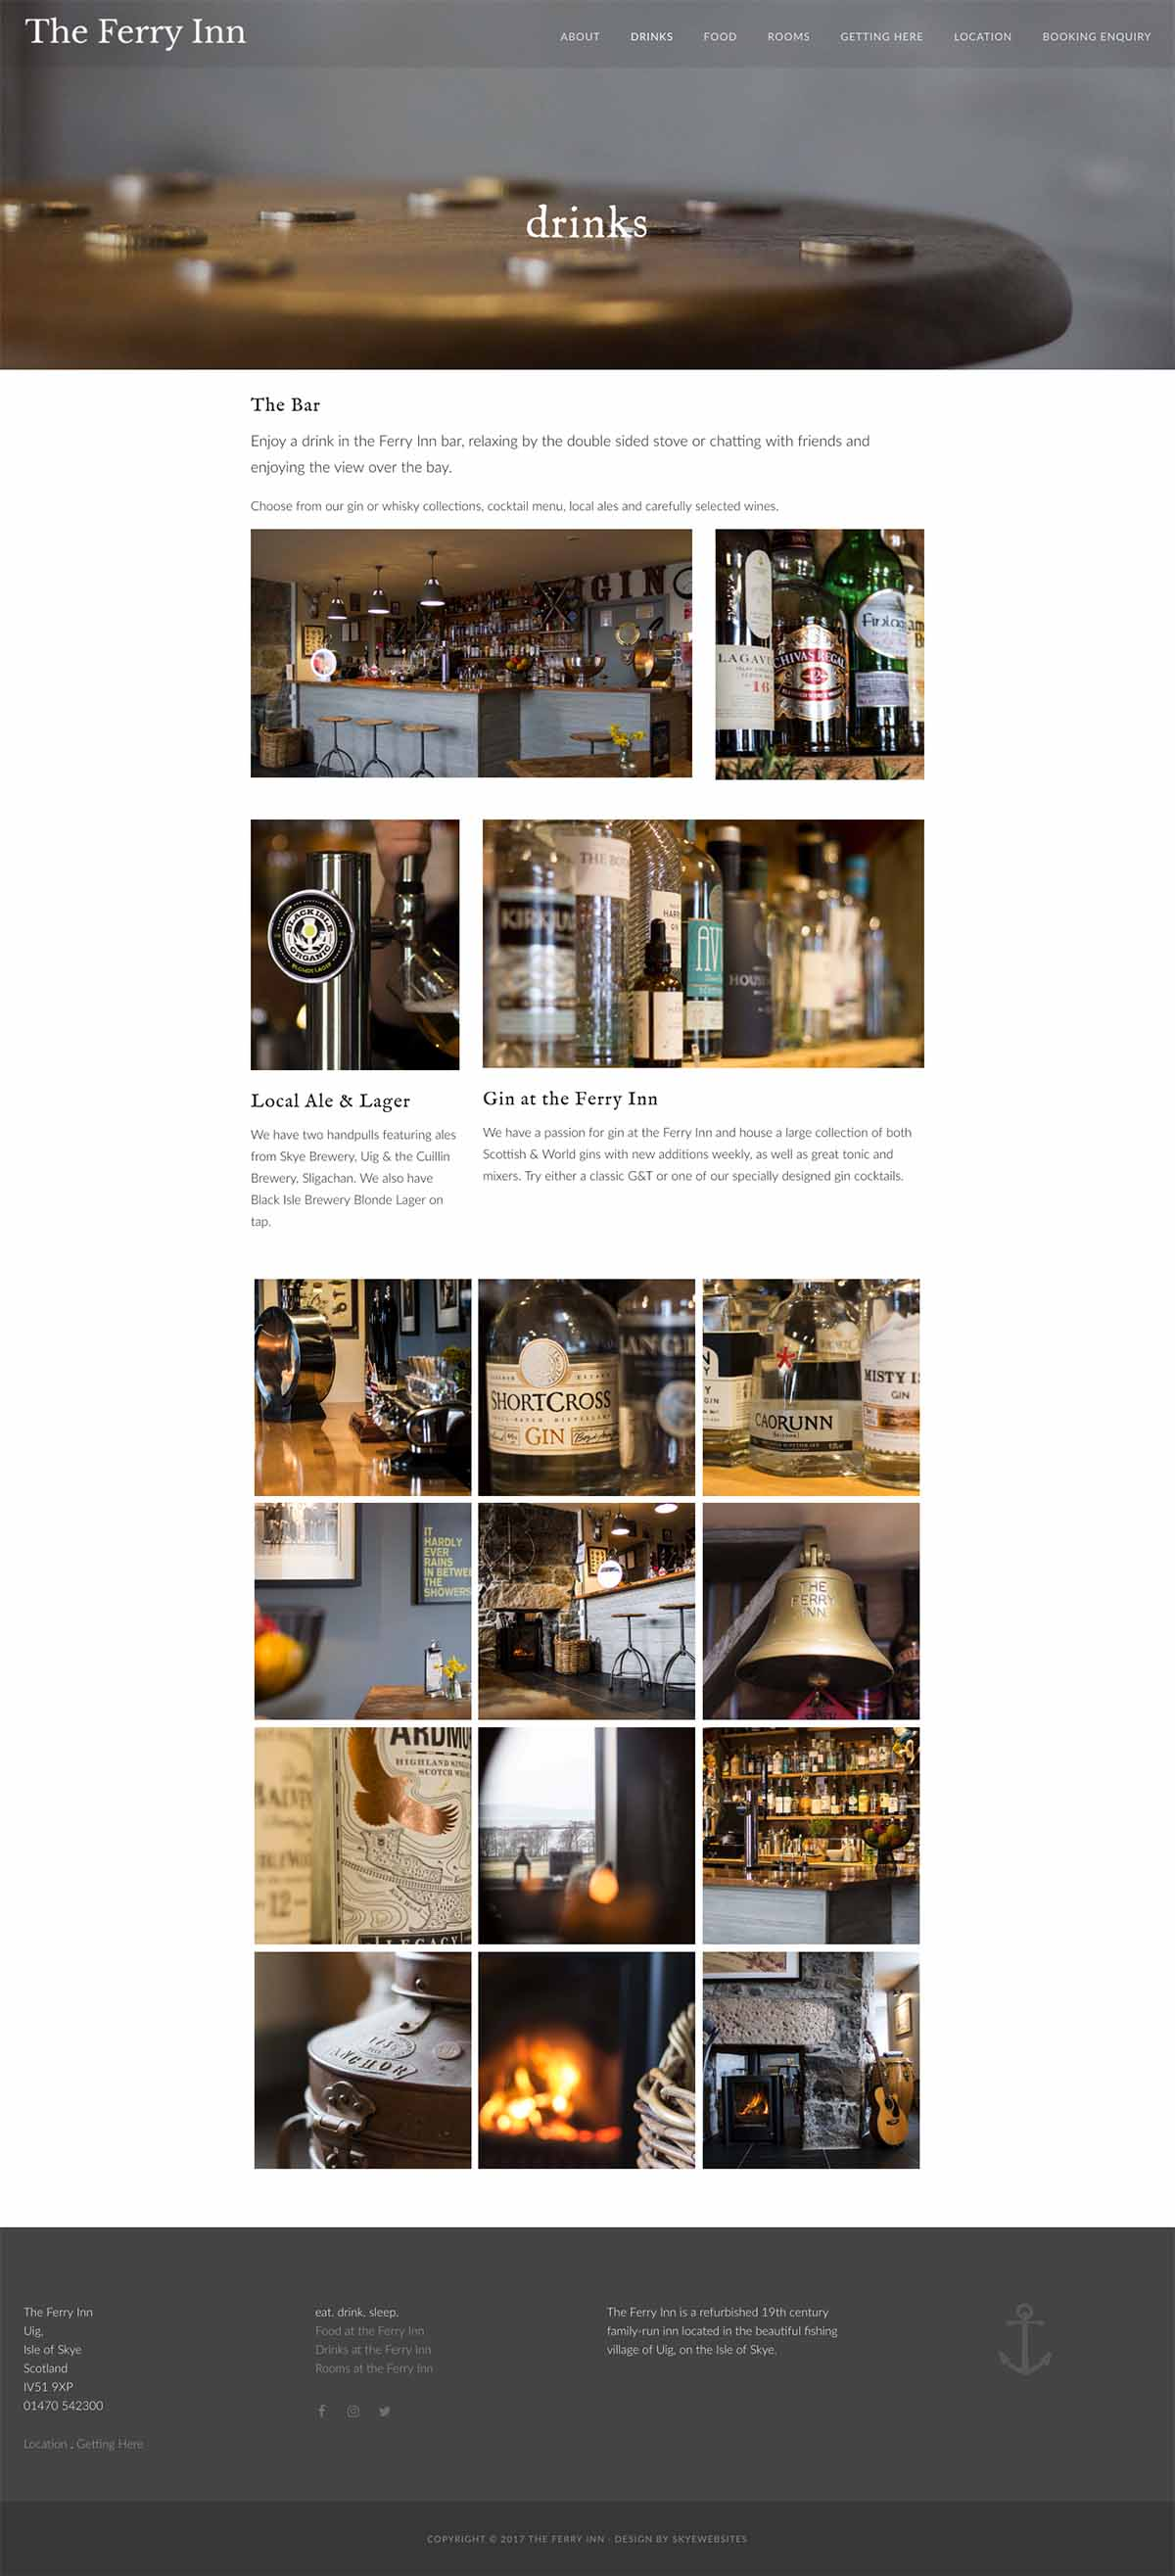 skyewebsites-ferry-inn-drinks-page